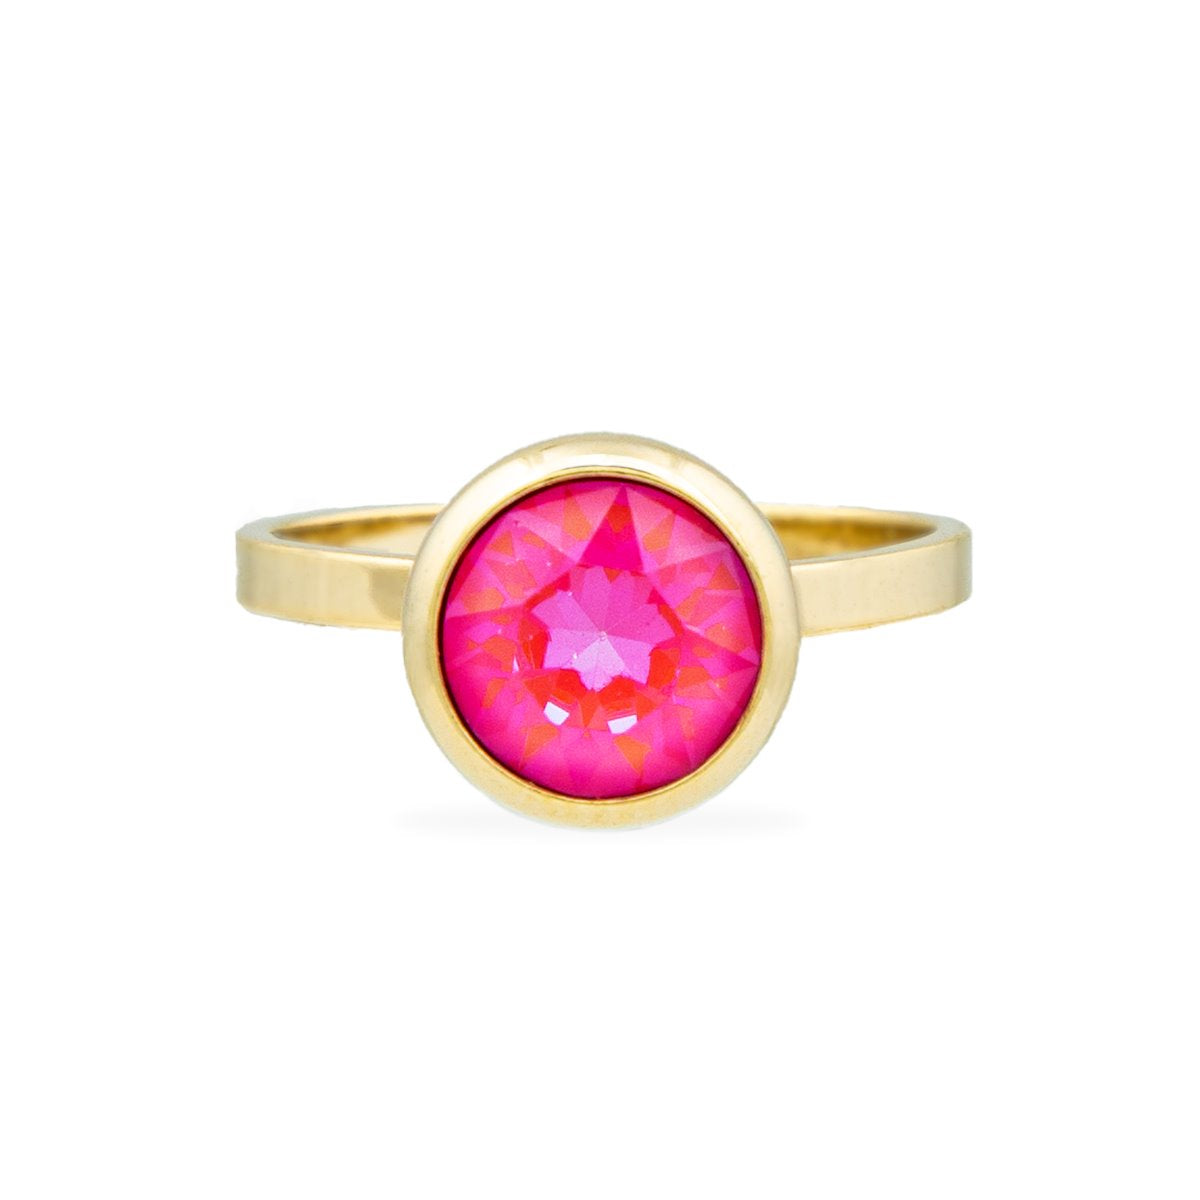 GRACE RING GOLD LOTUS PINK DELITE SFAC FOREVER CRYSTALS